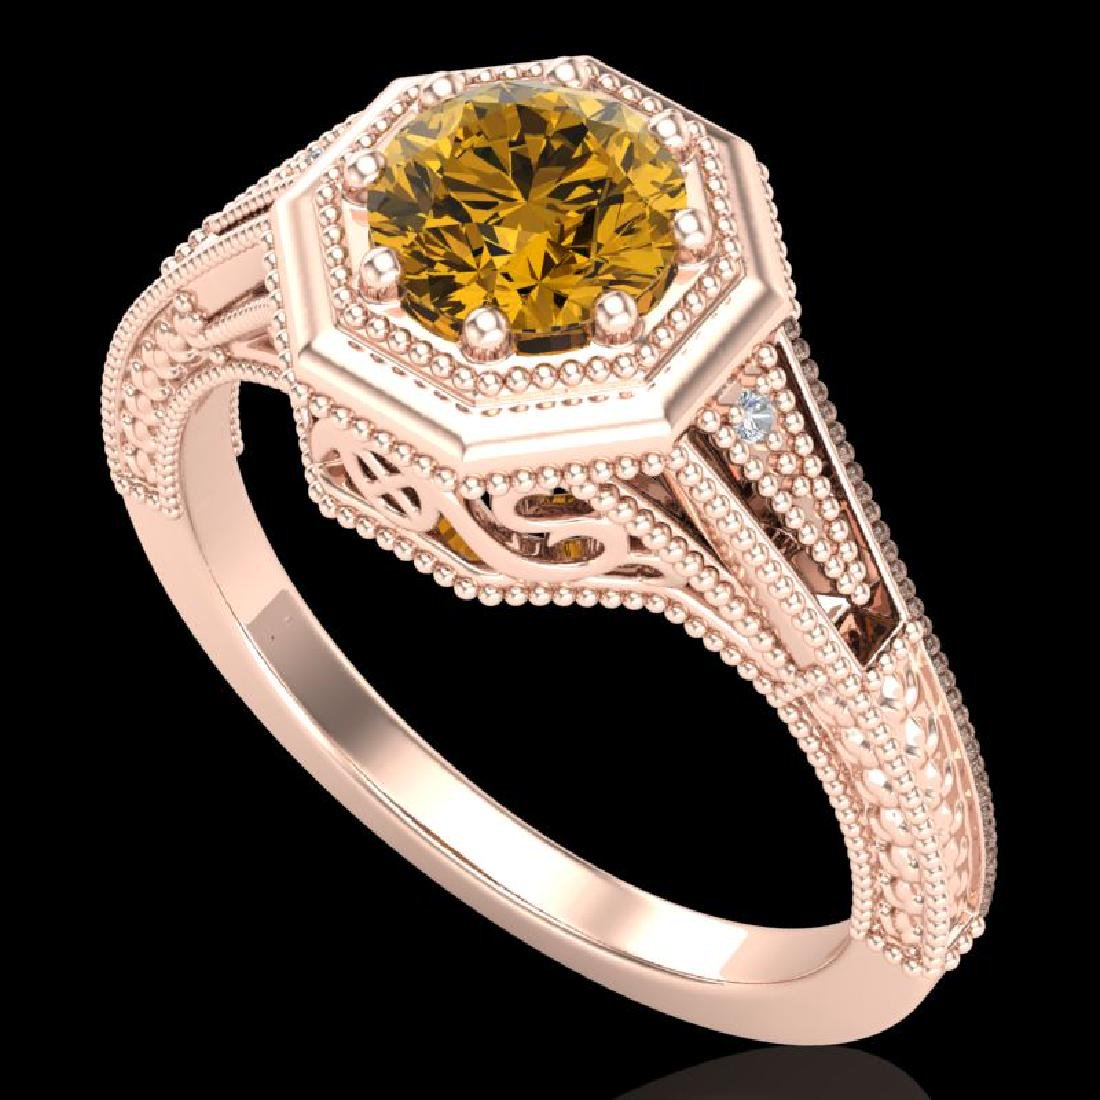 0.84 CTW Intense Fancy Yellow Diamond Engagement Art